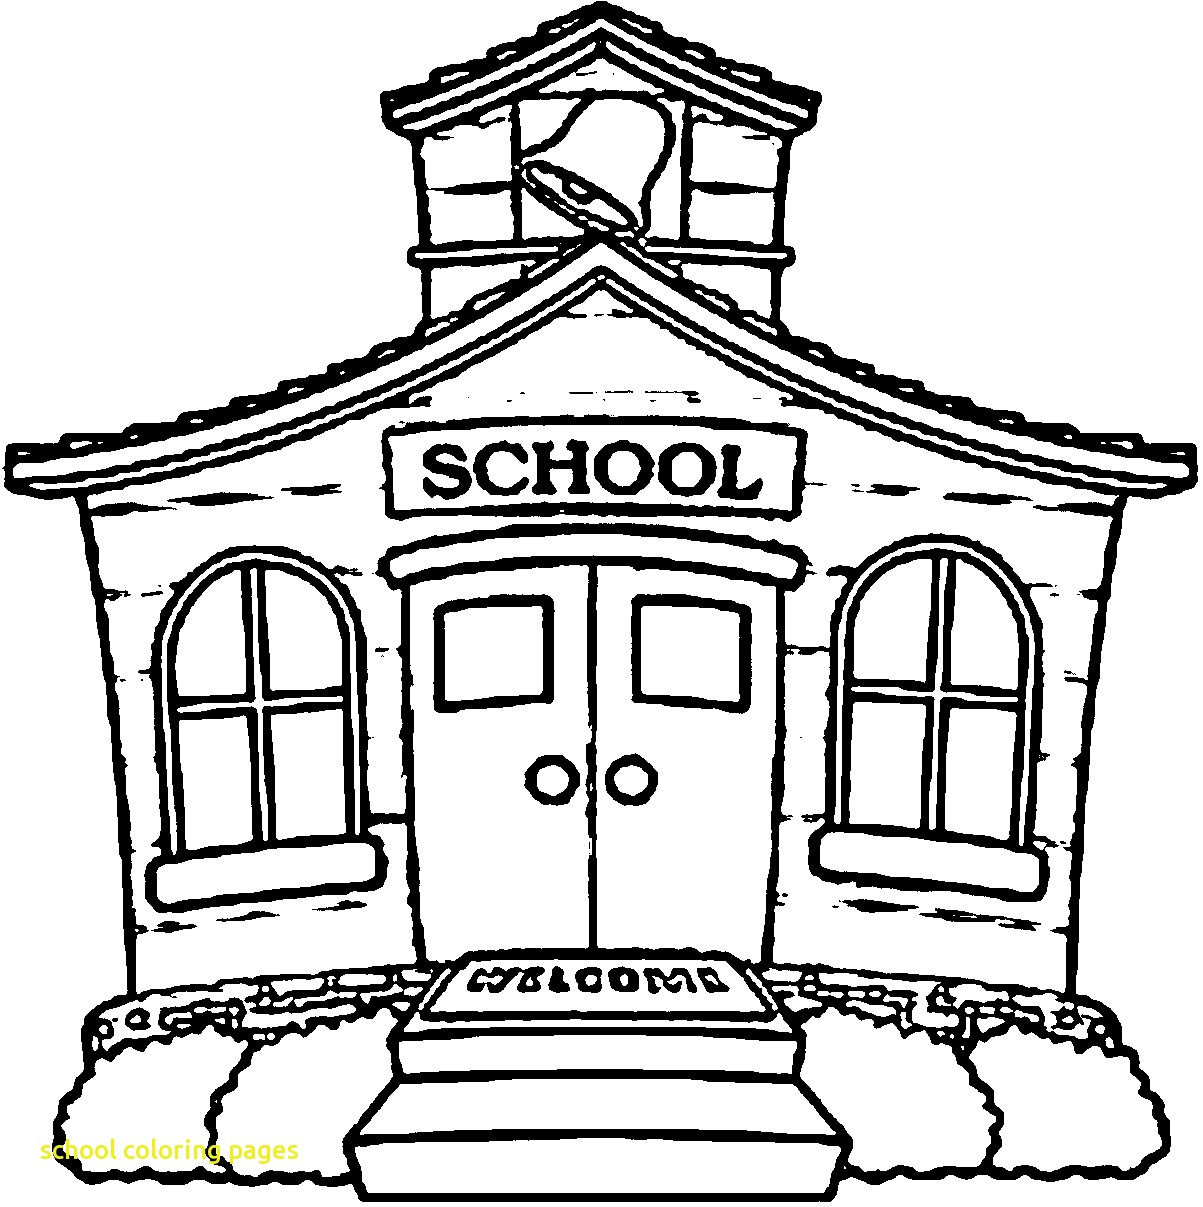 School Coloring Pages with 35 Coloring Page A School Small School Collection Of School Coloring Pages with 35 Coloring Page A School Small School Collection